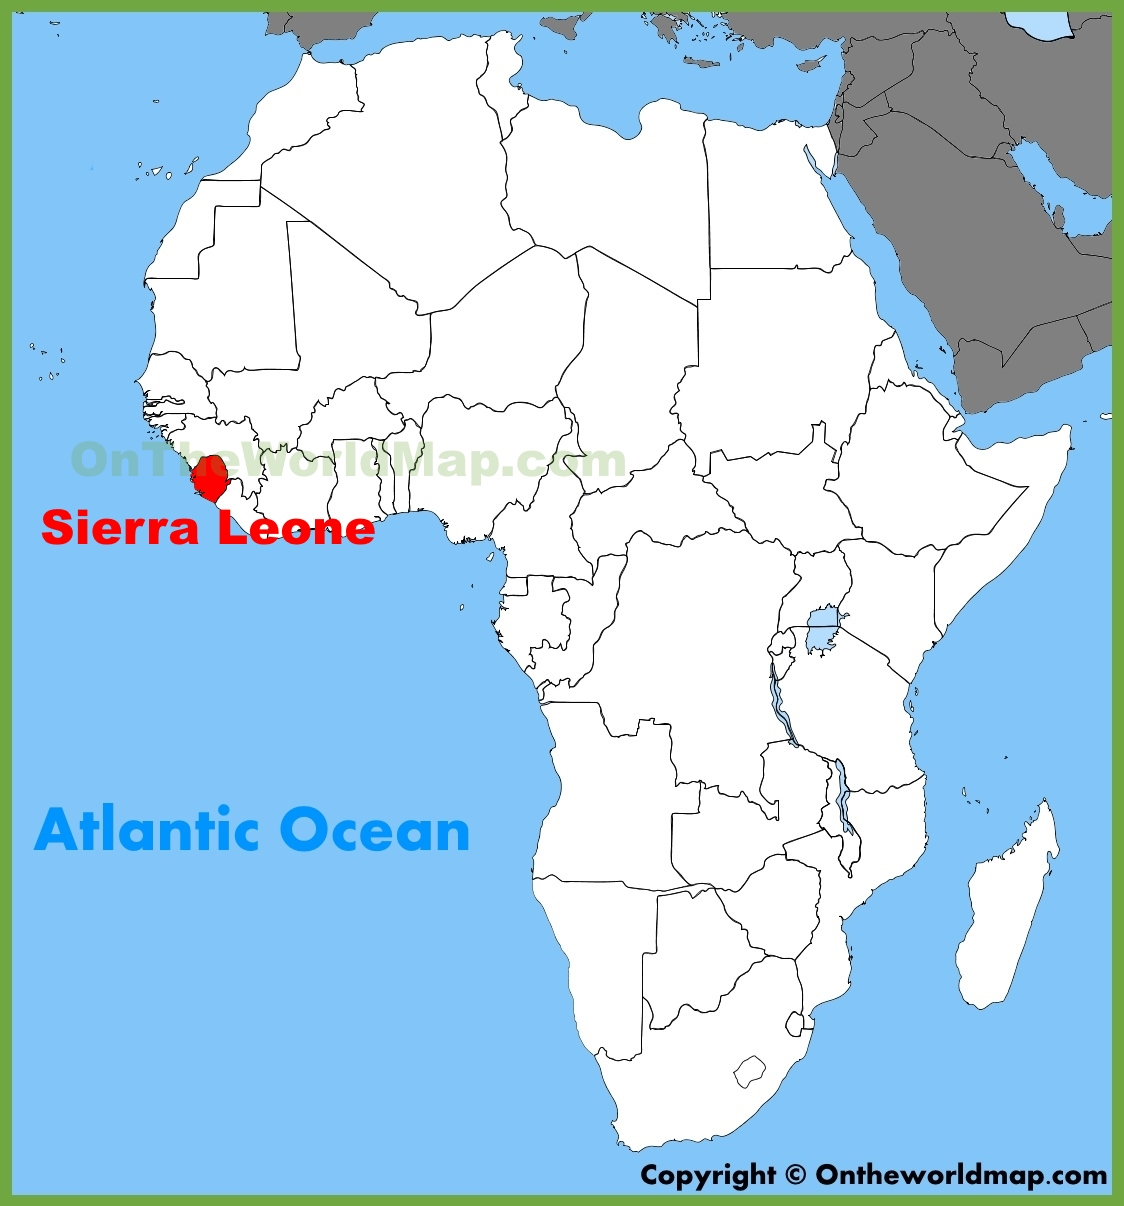 Sierra Leone Map Sierra Leone location on the Africa map